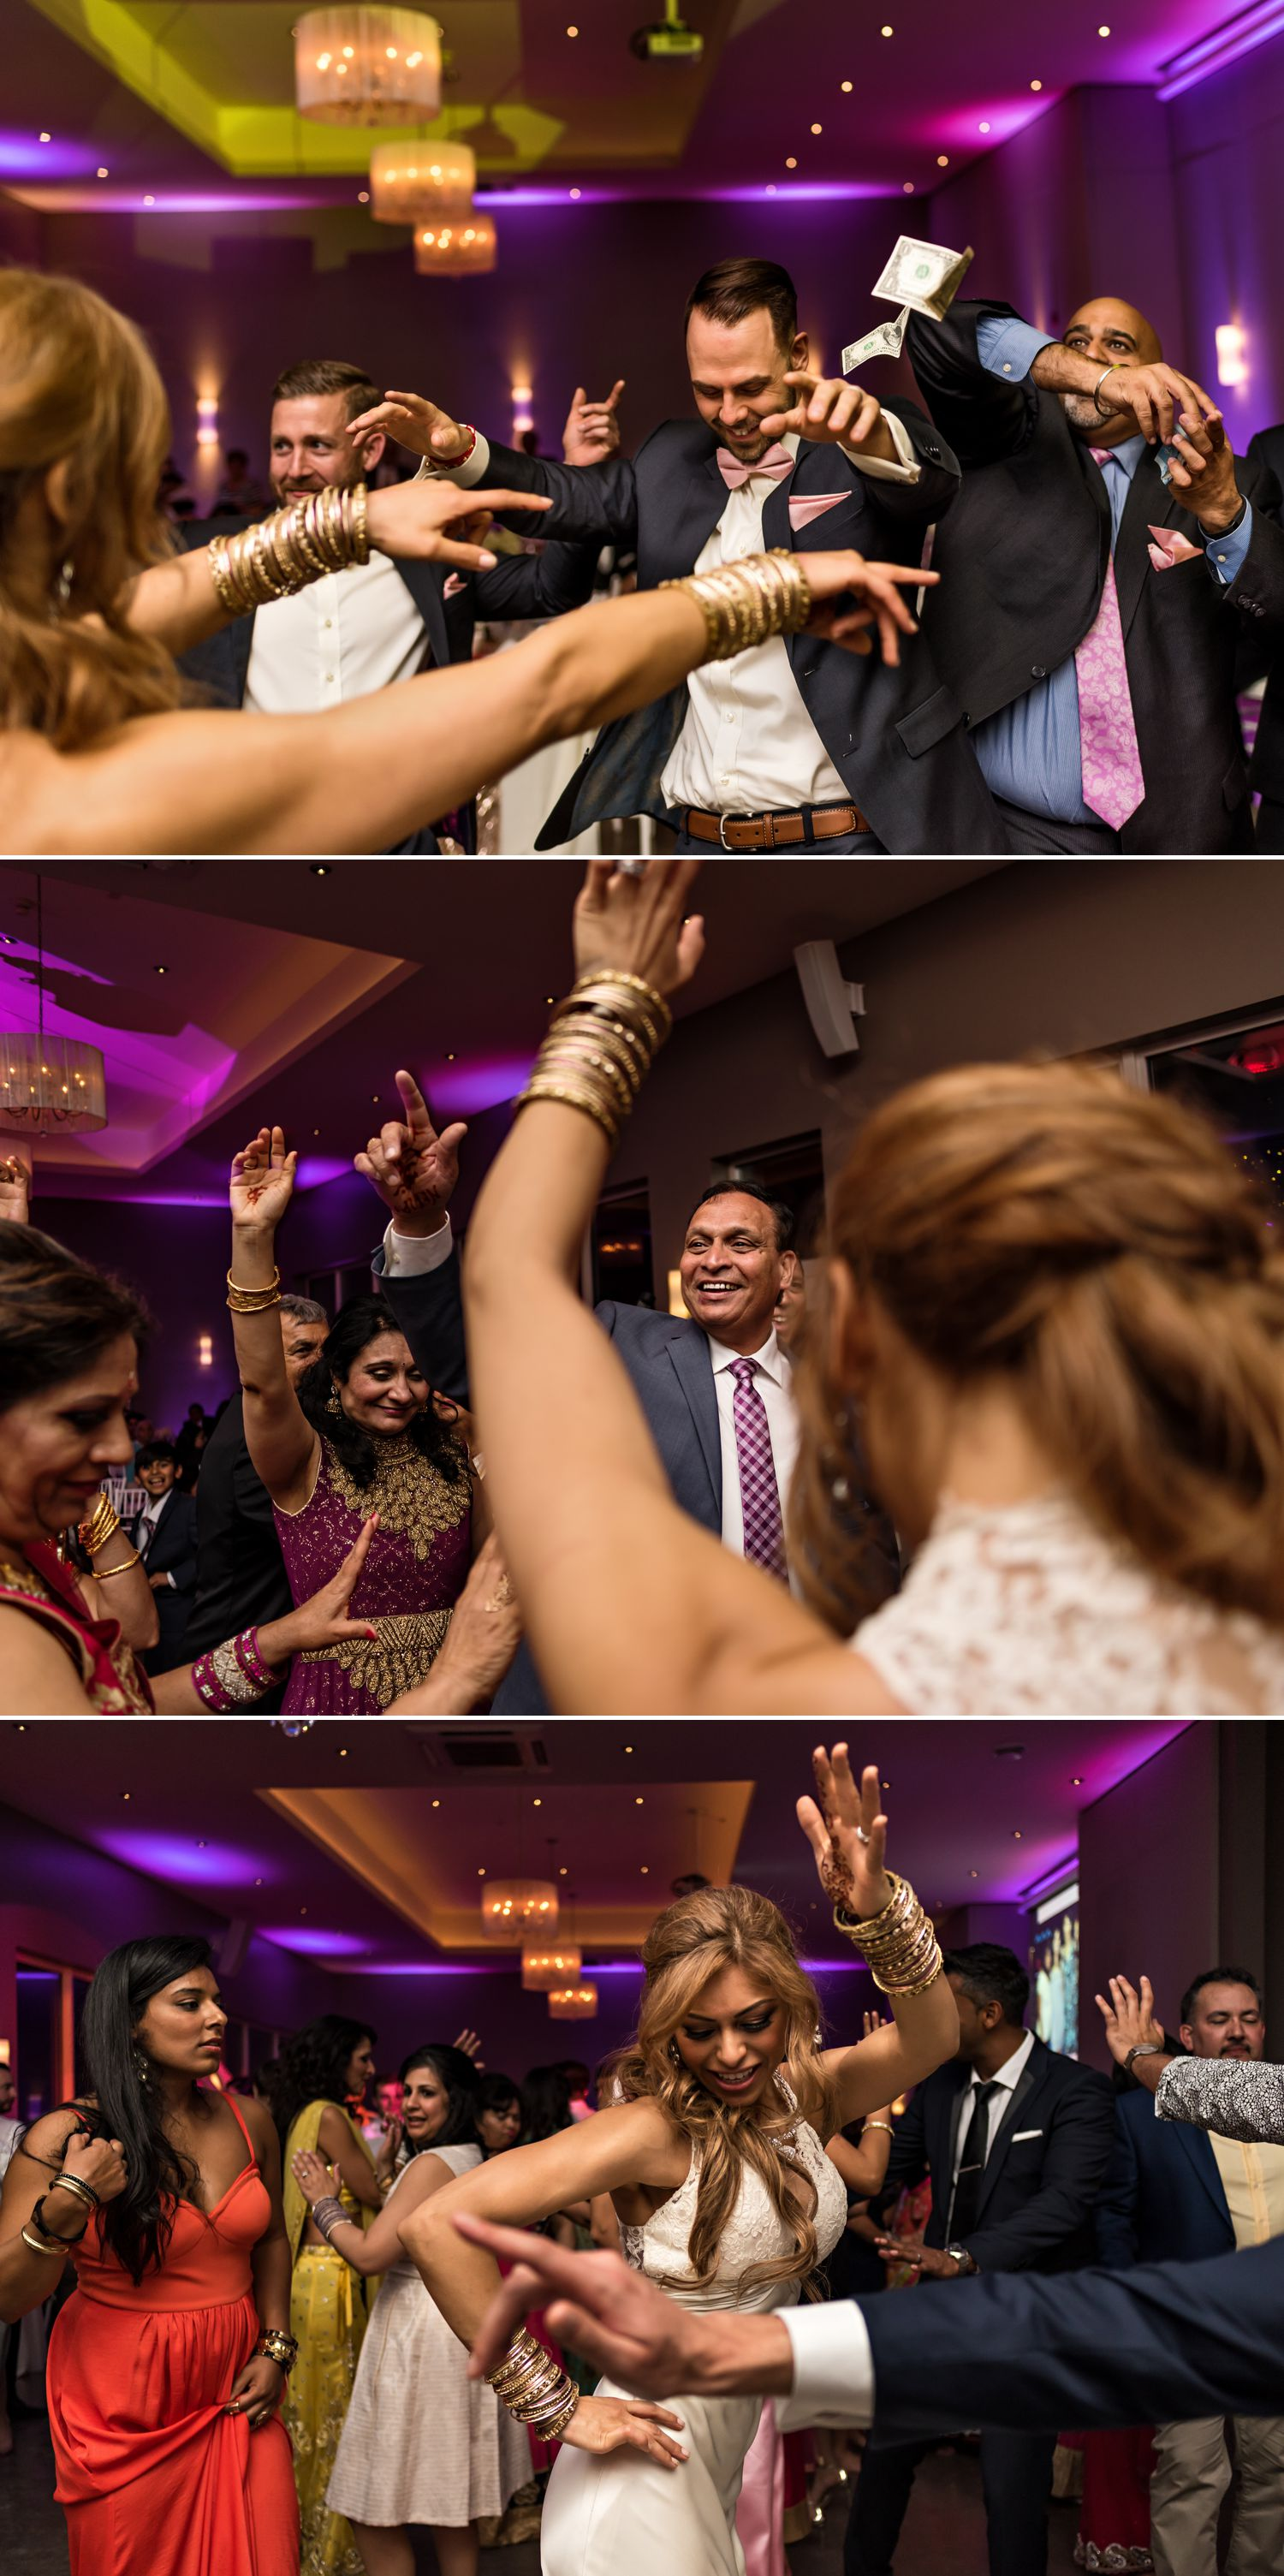 The bride and groom dancing with guests at their wedding reception at Le Belvedere